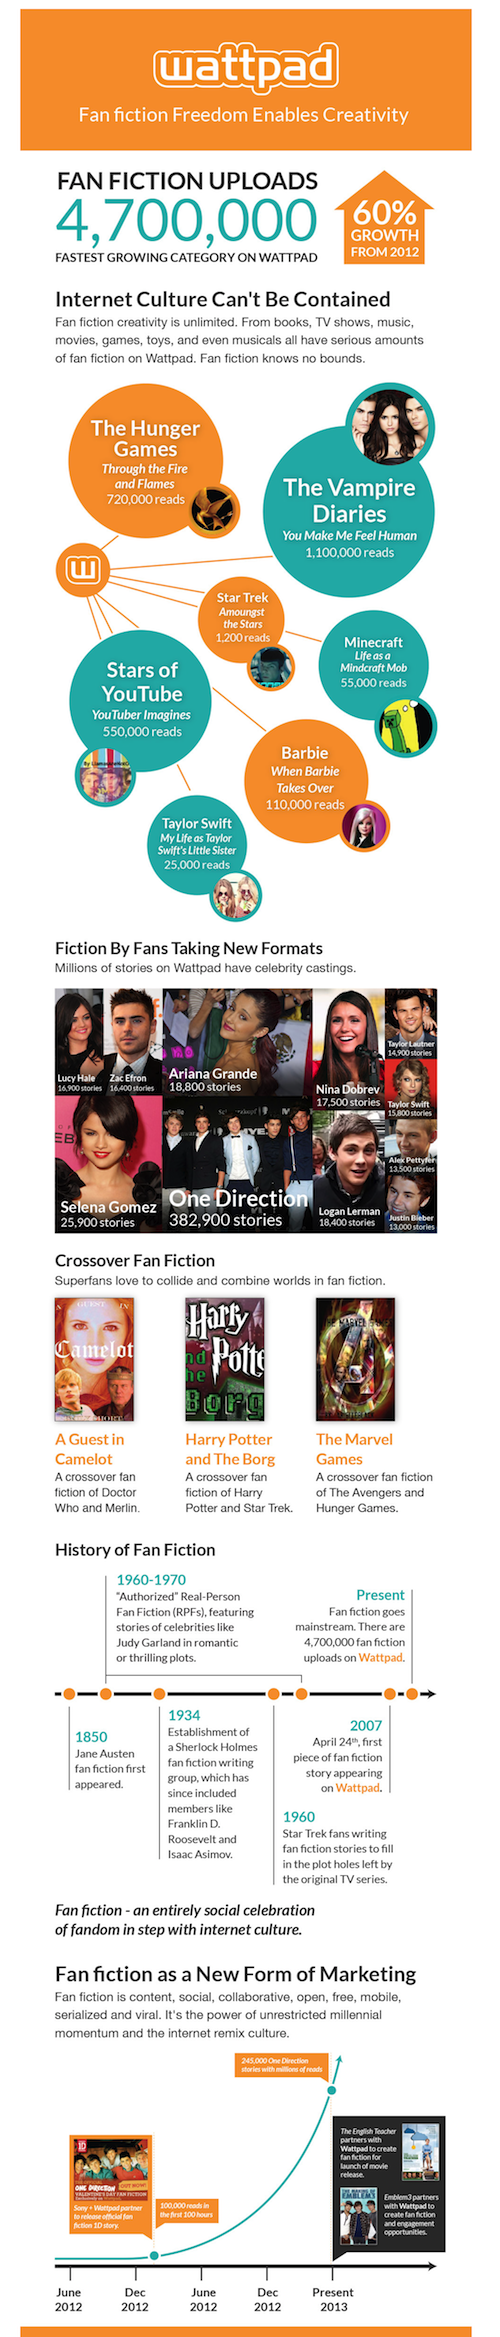 Wattpad-Fanfiction-Infographic1